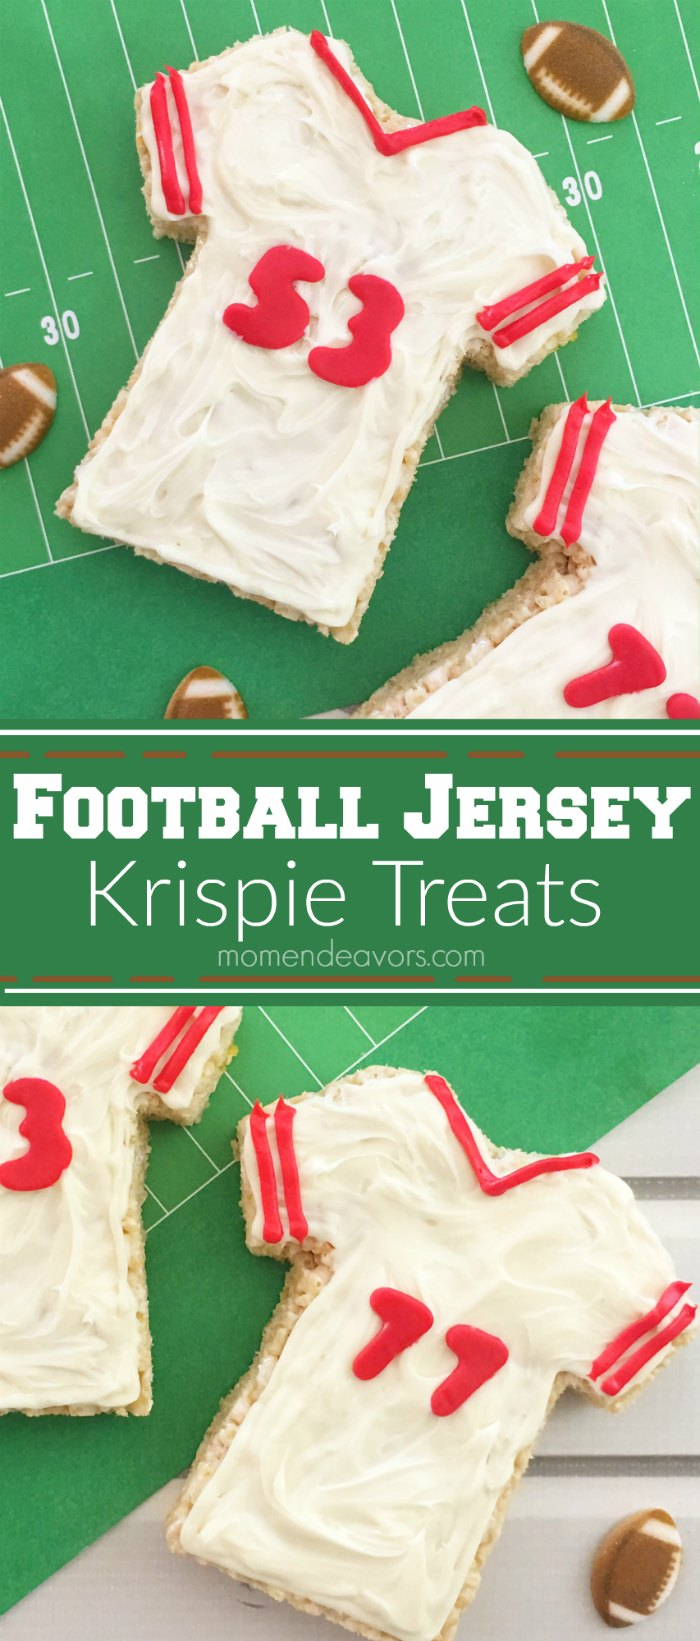 Football Jersey Krispie Treats